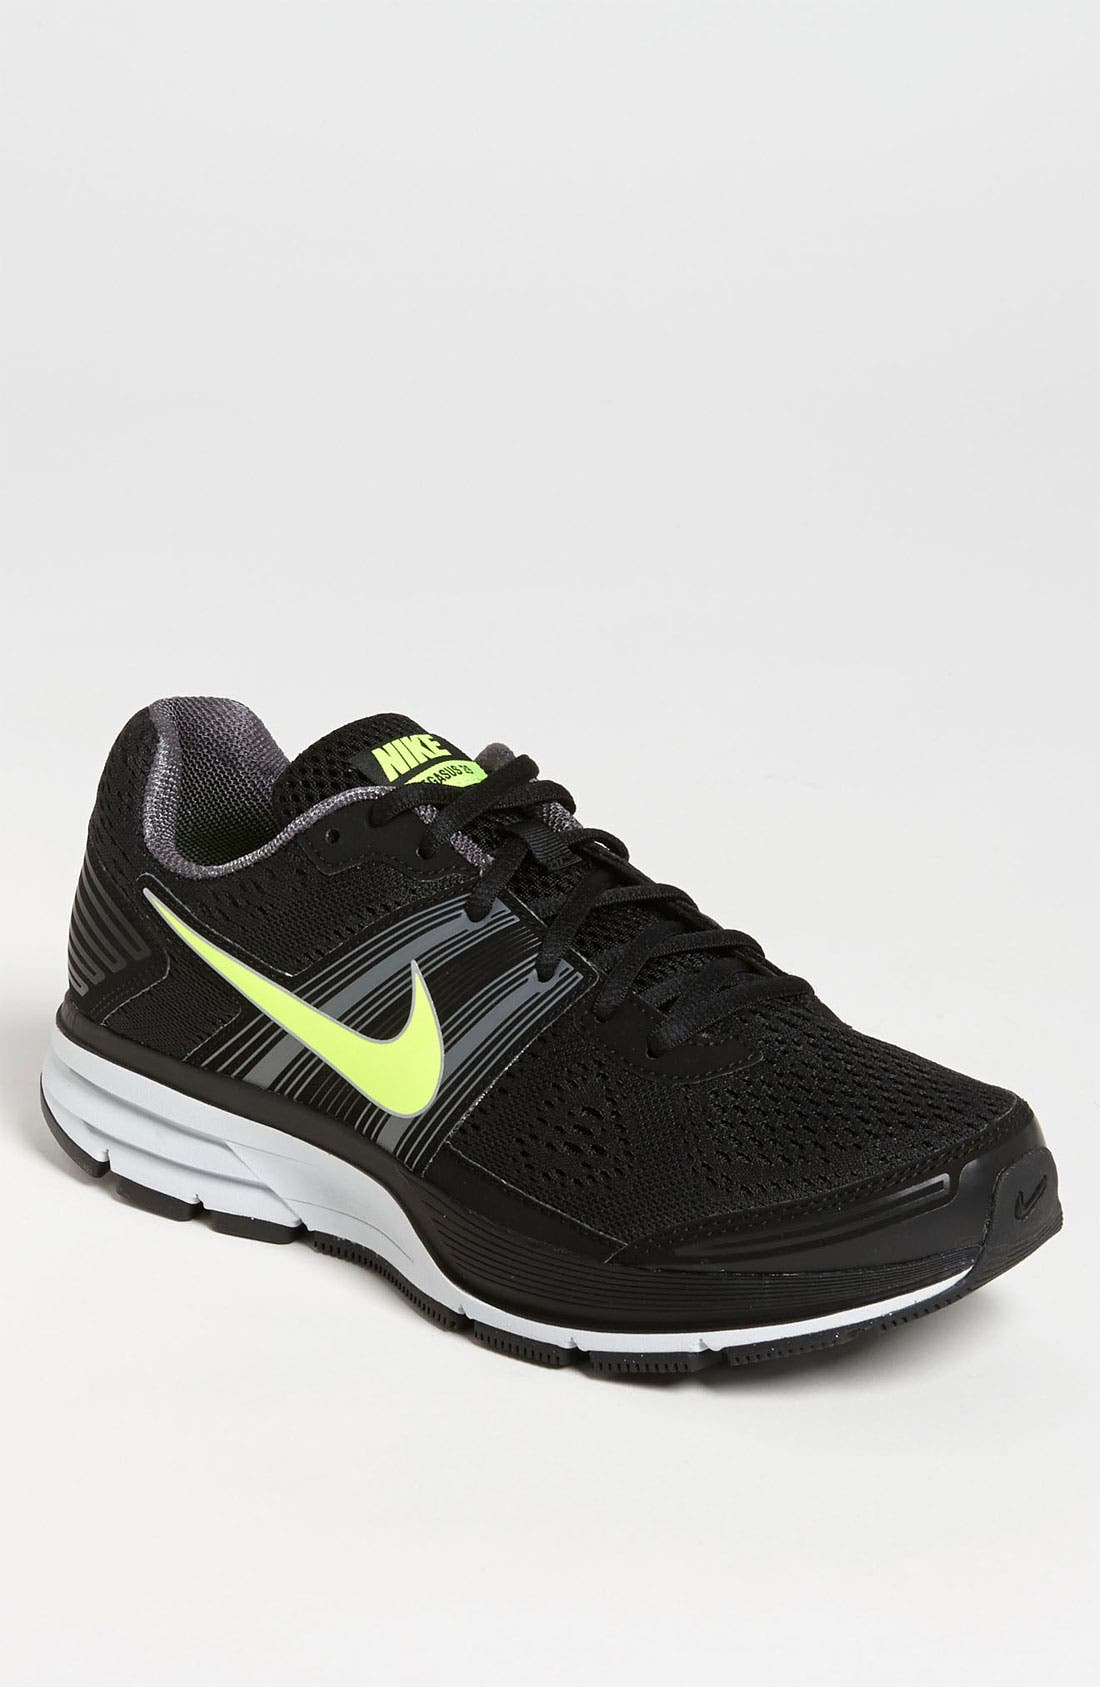 Alternate Image 1 Selected - Nike 'Air Pegasus+ 29' Running Shoe (Men)